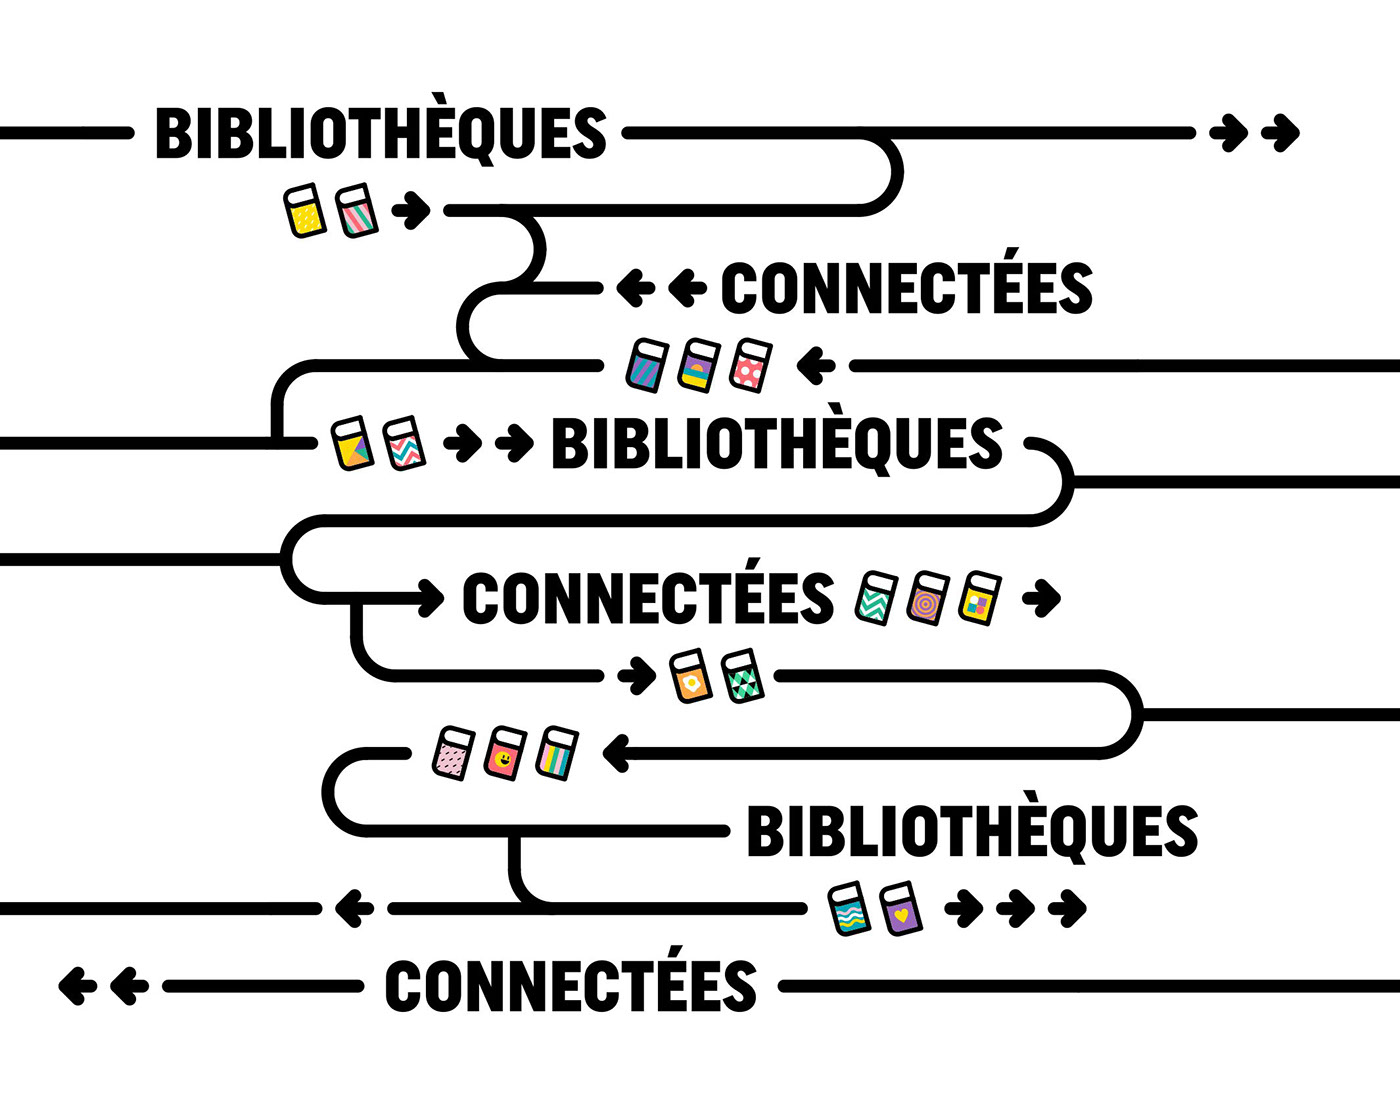 books library culture Startup innovation france Smart tech